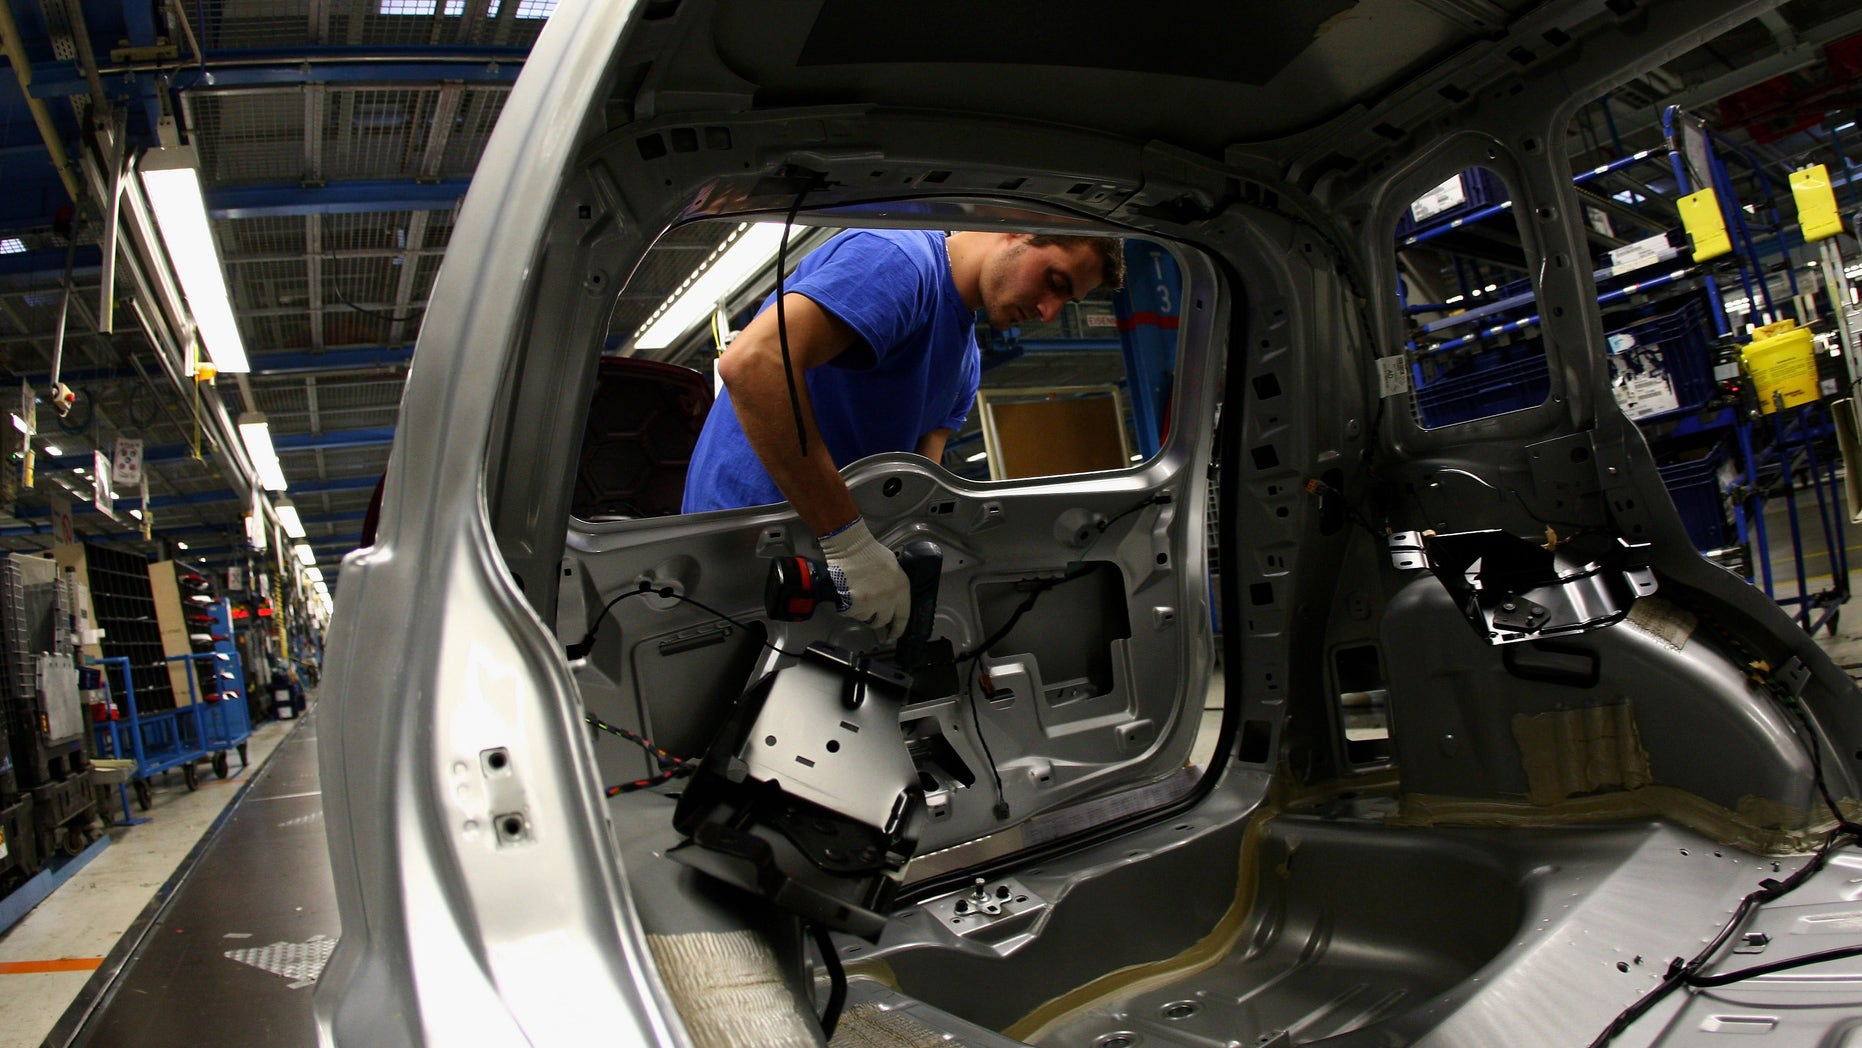 COLOGNE, GERMANY - DECEMBER 04:  General picture of a production of the new Ford Fiesta is seen at the Ford Fiesta manufacture in Cologne Niehl on December 4, 2008 in Cologne, Germany. Cologne Ford manufacture has started on August 14 the world wide production of the new generation of Ford Fiesta.  (Photo by Vladimir Rys/Getty Images)